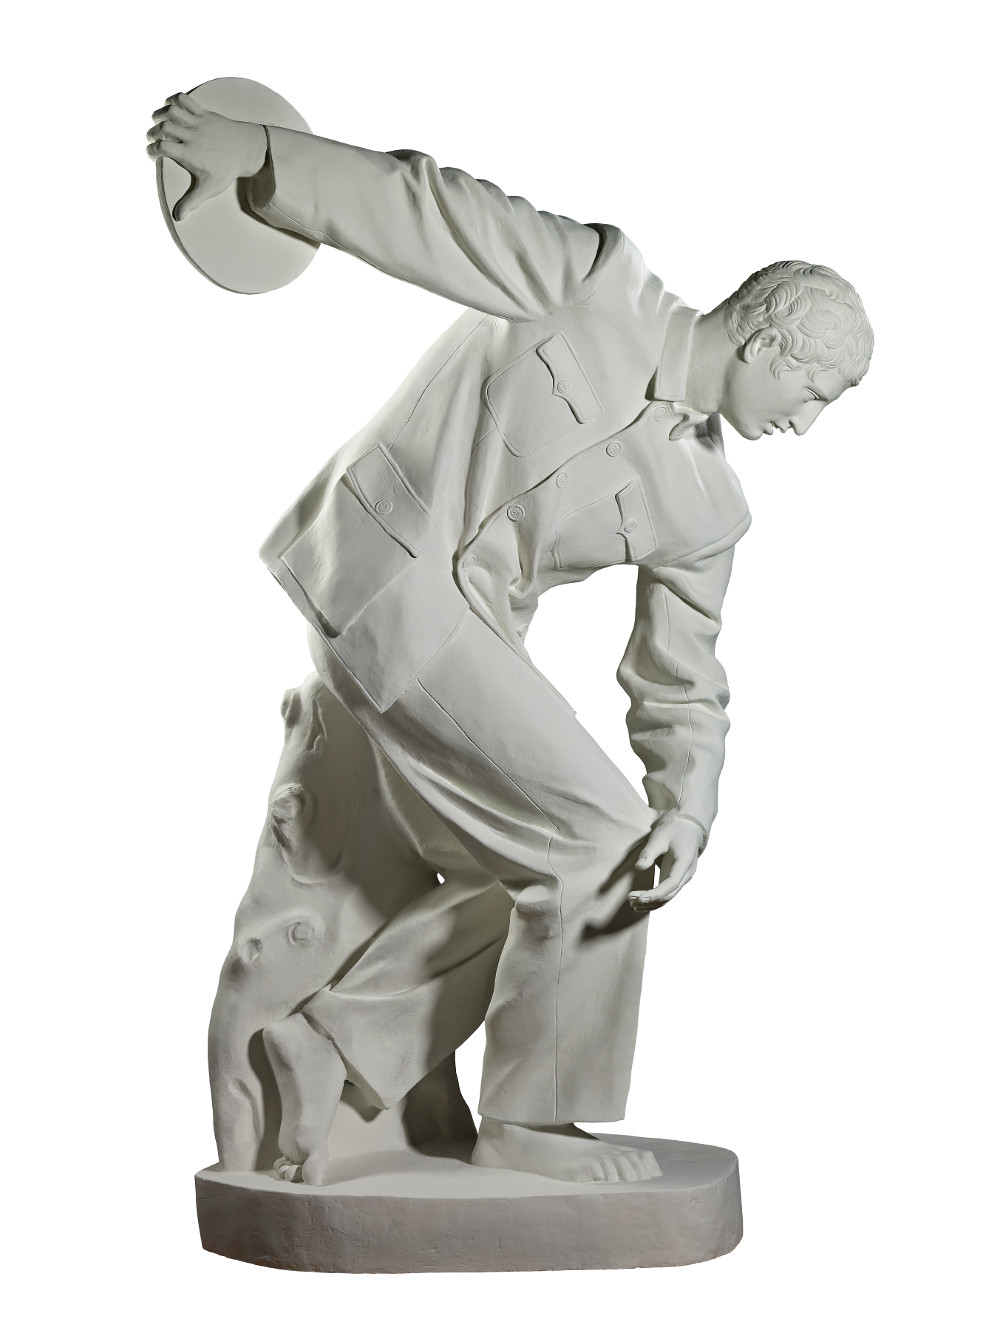 Discobolus in Zhongshan suit - By Jianguo SuiBronzeAD 2012ChinaBritish Museum© 2017 Sui Jianguo / Asia ARMThis sculpture is based on the ancient Greek statue of Discobolus (discus thrower) – the bronze has been painted to resemble white marble. Jianguo Sui has dressed the athlete in a modern Zhongshan suit, an outfit associated with the Chinese Communist leader Mao Zedong (1893–1976). Poised to release his discus while clad in constricting bureaucratic garb, the sculpture becomes a metaphor for the artistic constraints of communist-era China. It also provides a witty and ironic comment on the complex historical relationship between Asia and Europe.